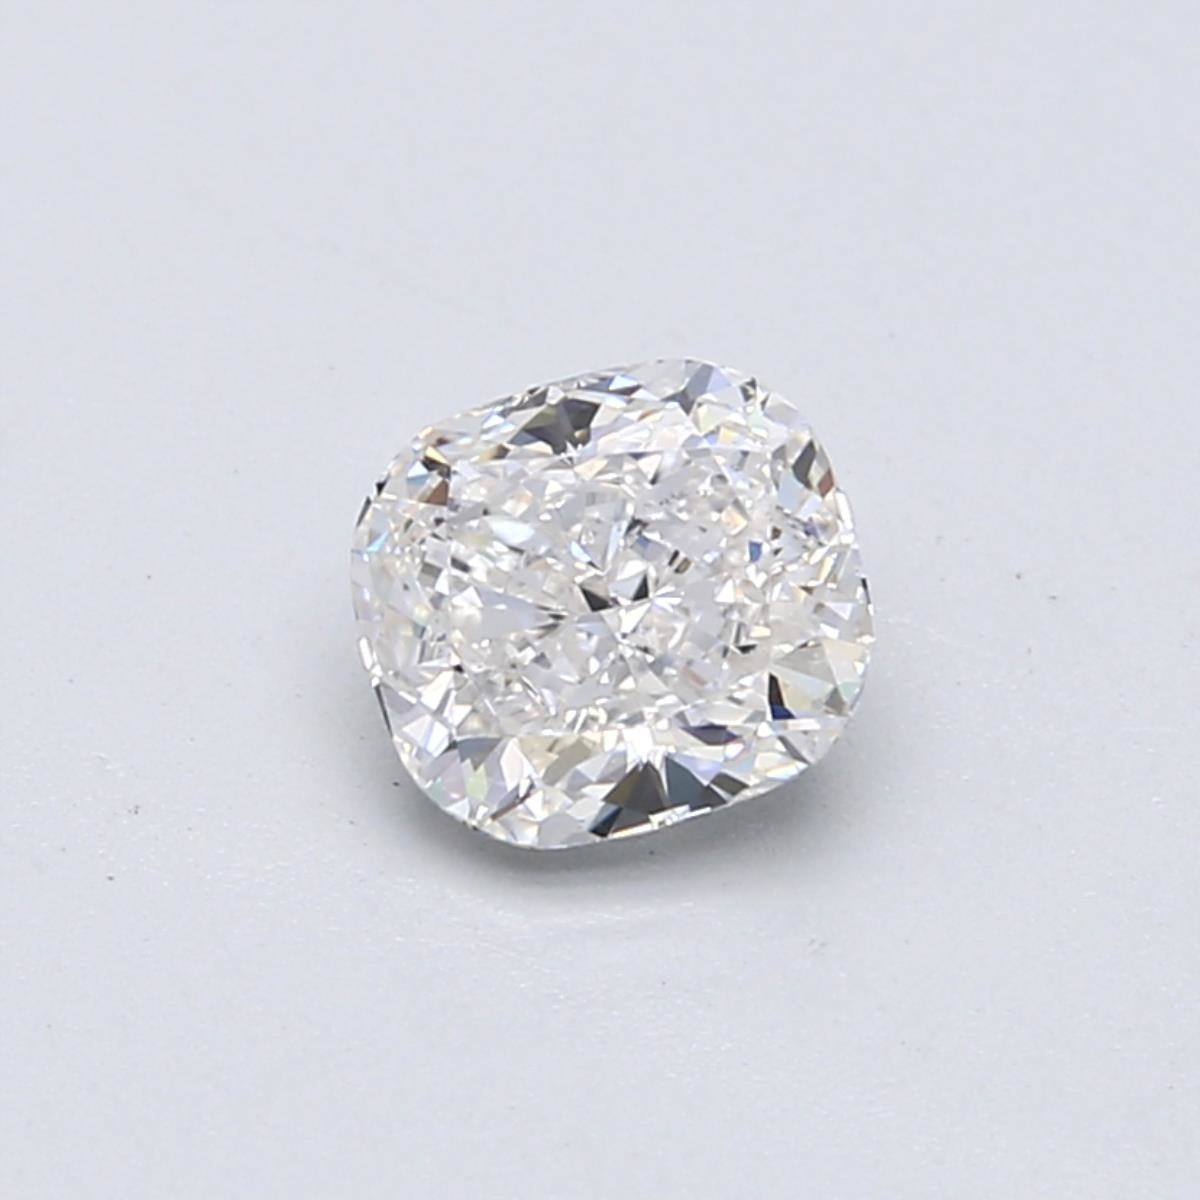 1 carat F color cushion cut diamond